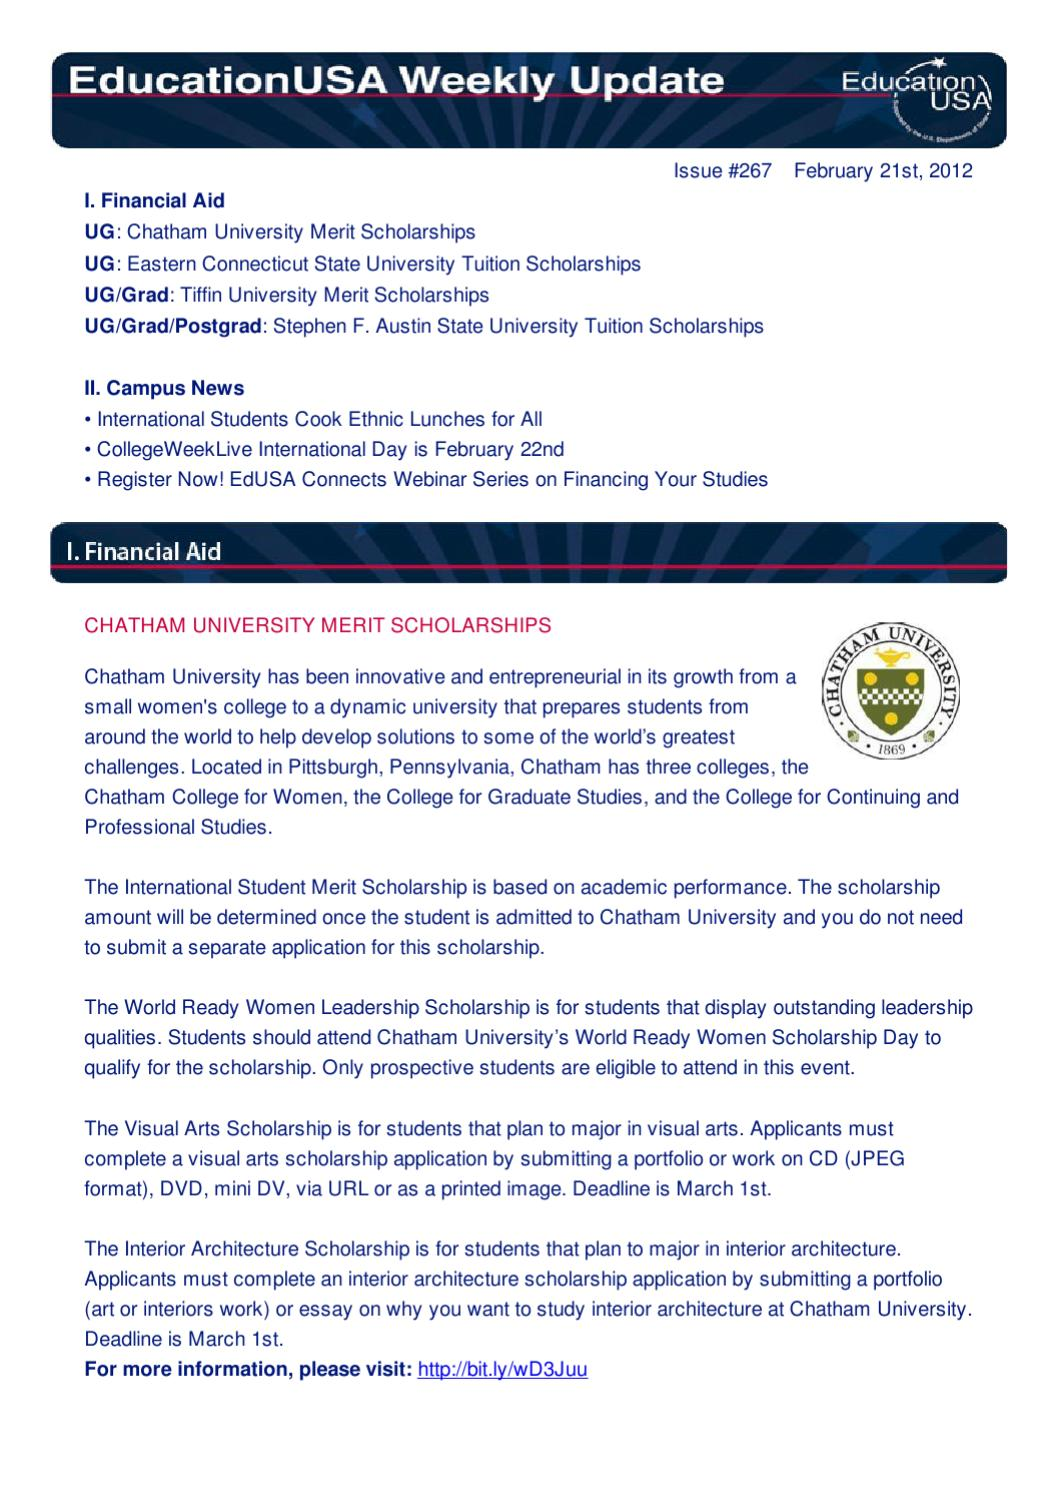 EducationUSA Weekly Update - Feb  21, 2012 by Fulbright